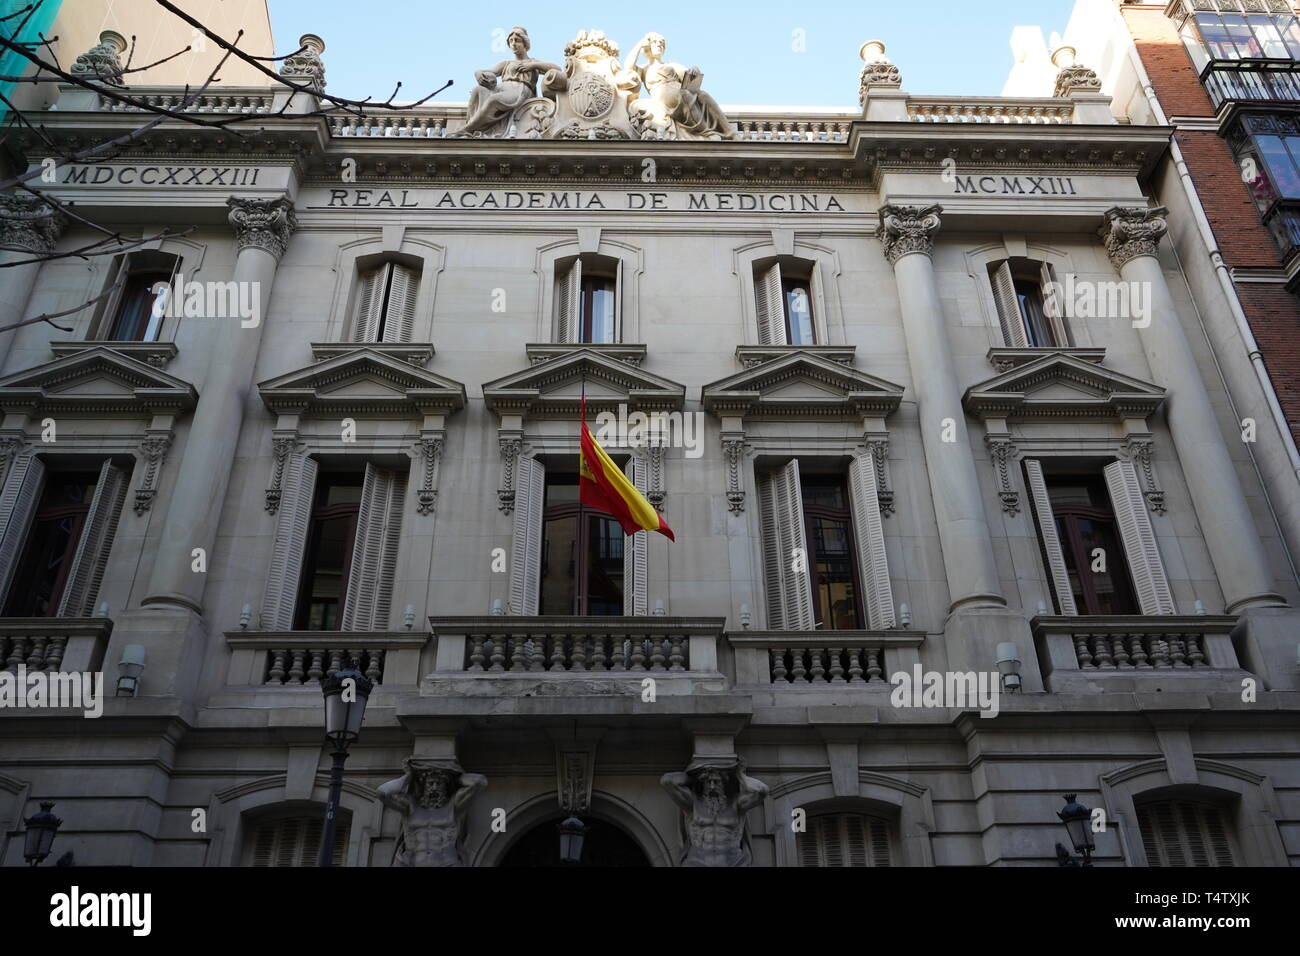 Royal Academy of Medicine, Madrid, Spain Stock Photo